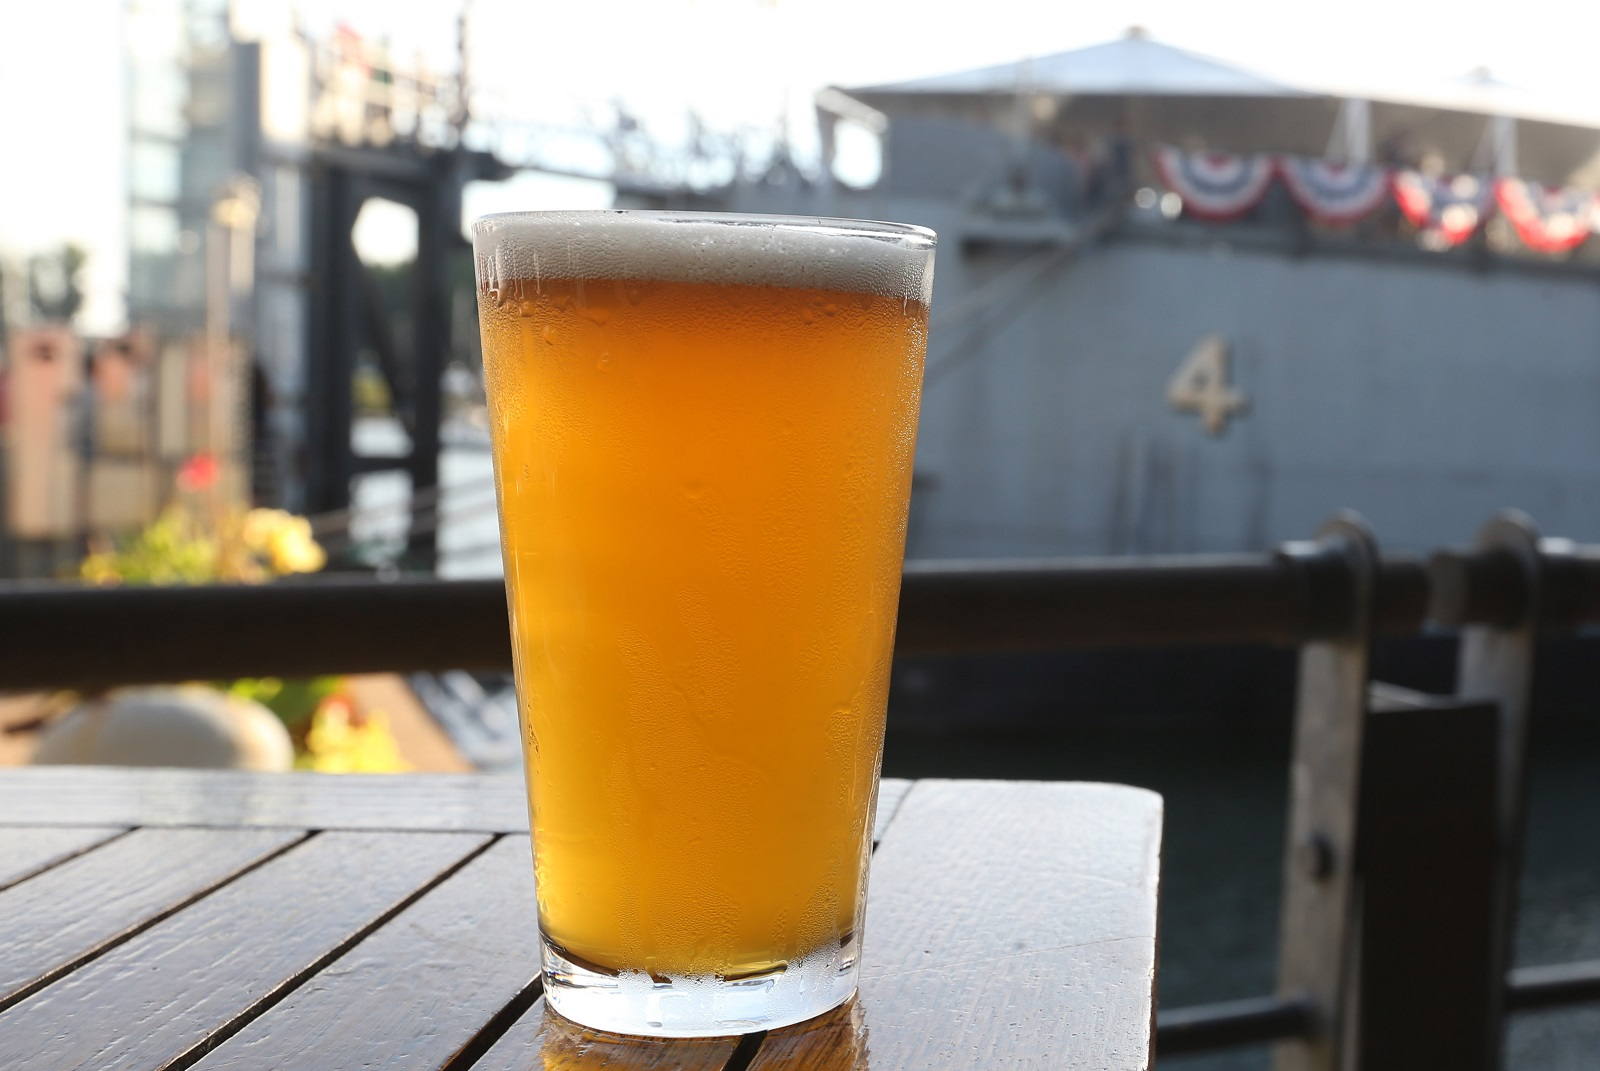 Alternate beer with water for a healthier summer lifestyle. (Sharon Cantillon/Buffalo News)